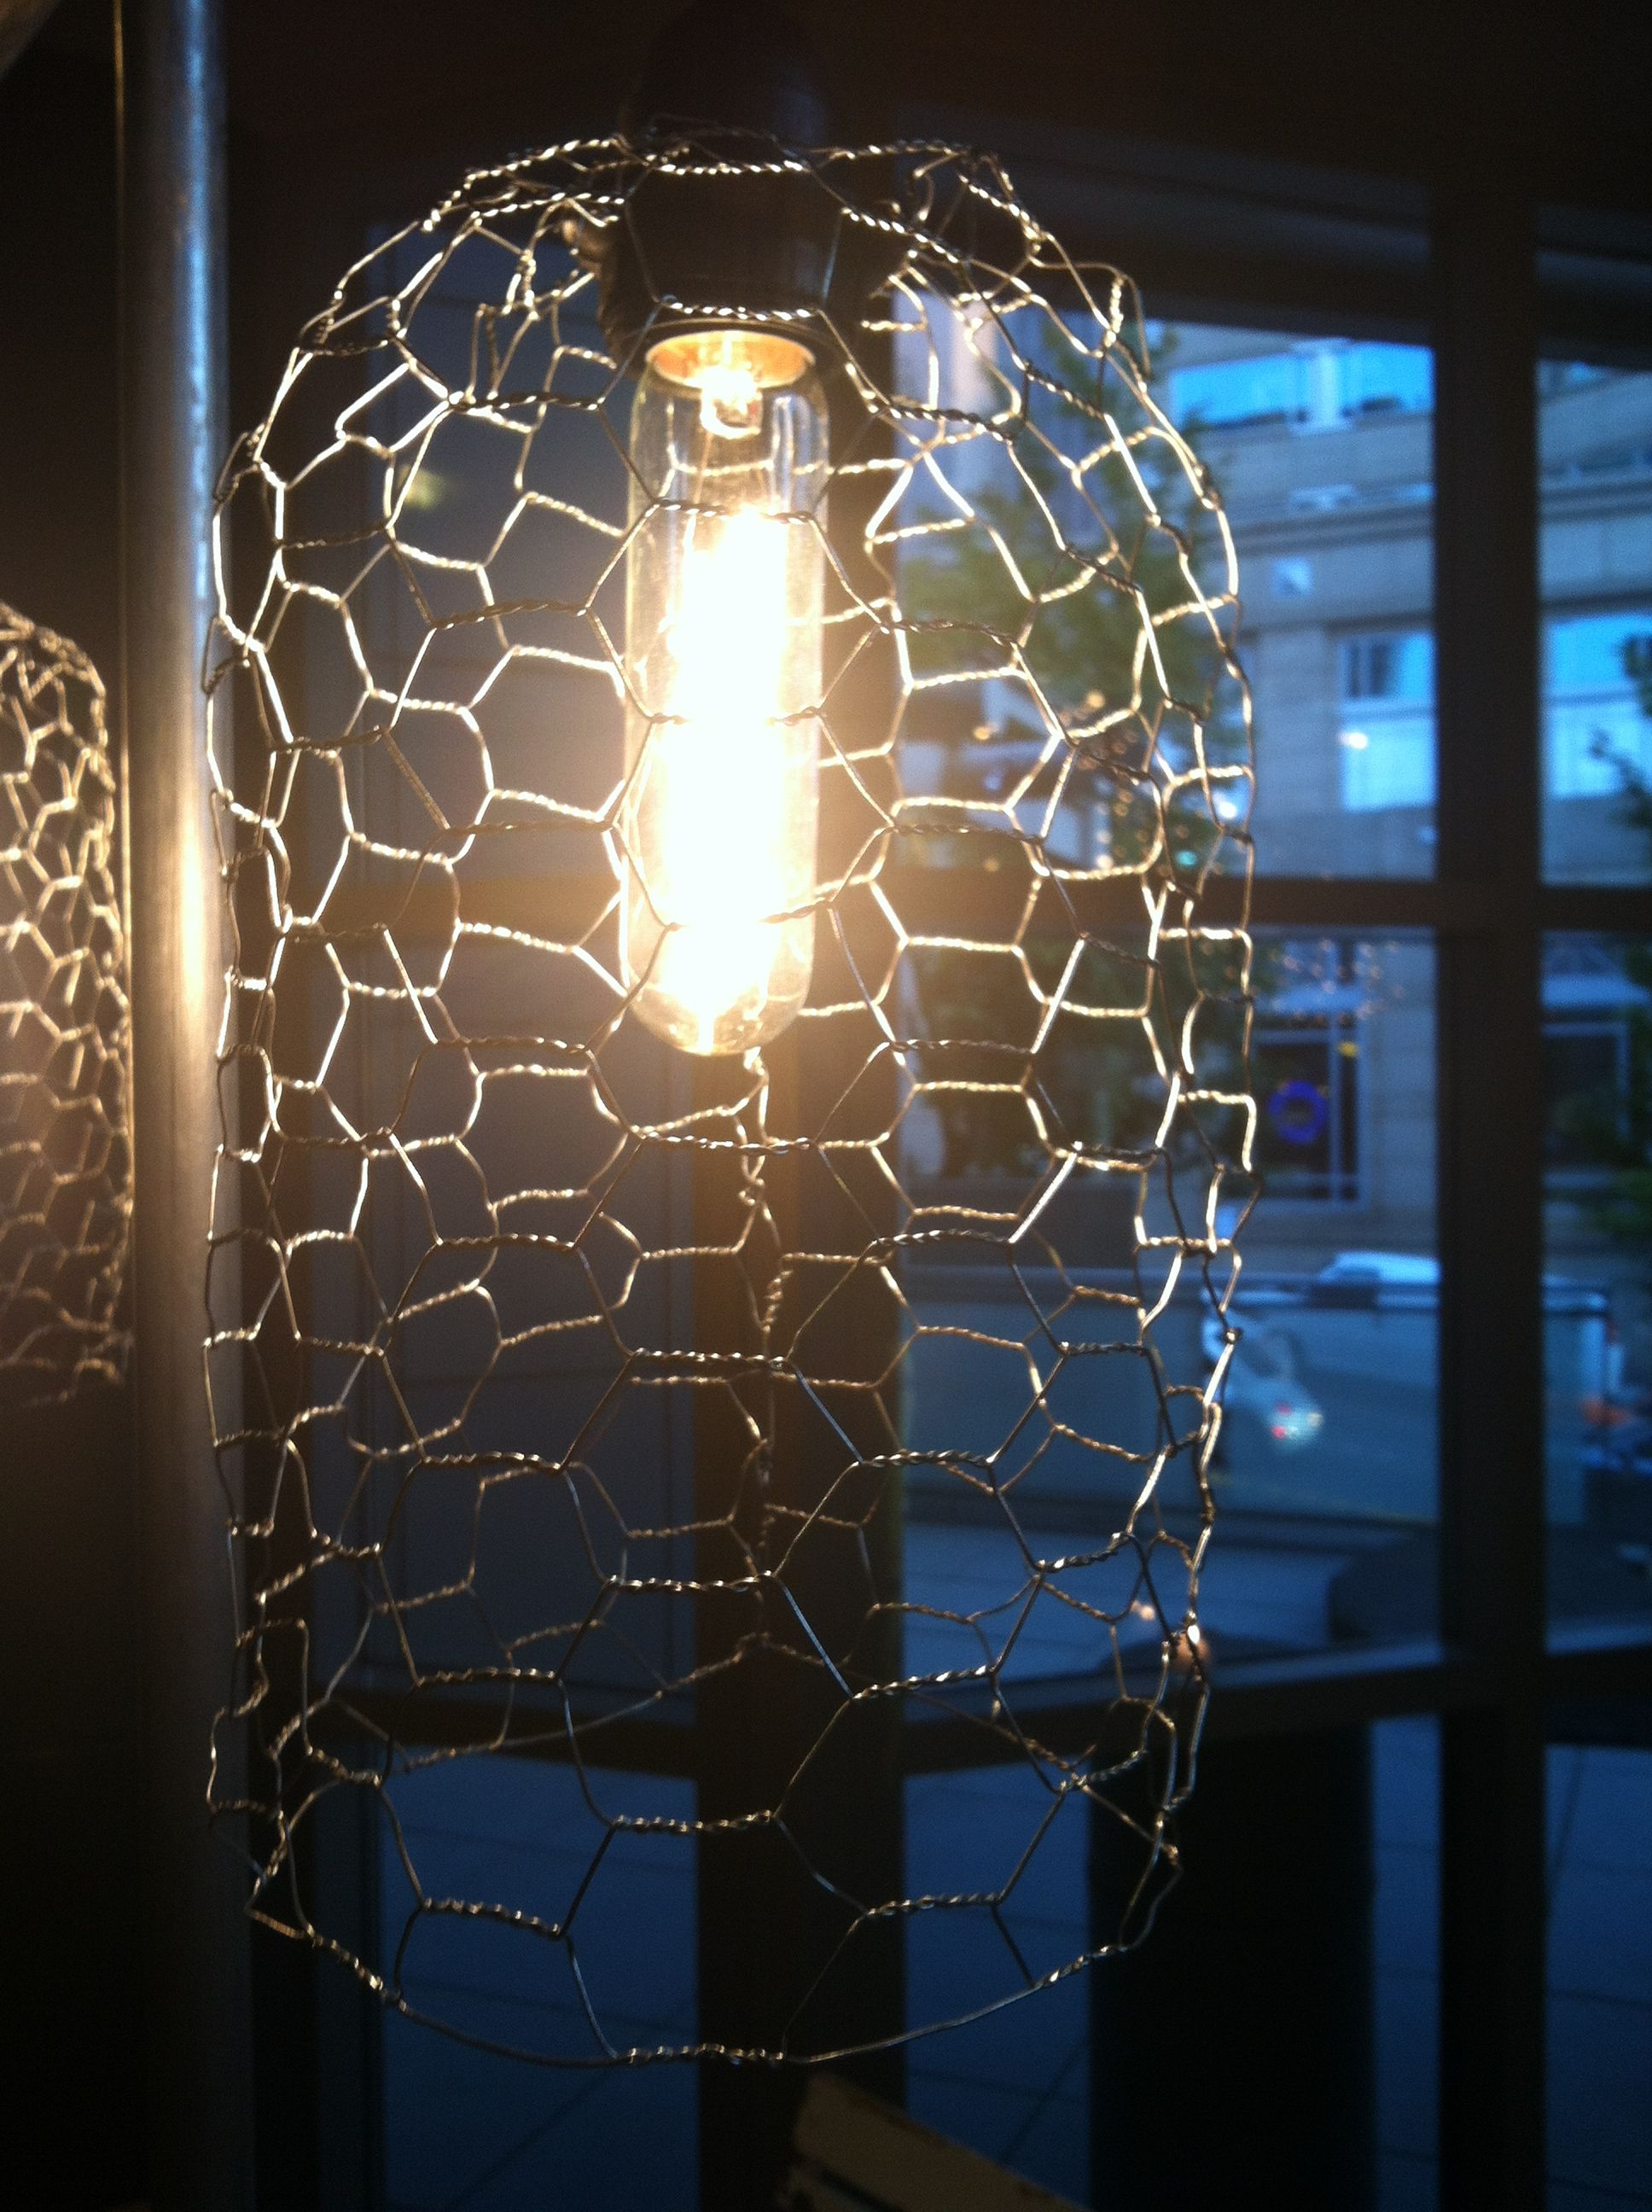 Chicken Wire Dress Form When We Were In Elementary School Art Class Didn T We Used To Use Something Sim Craft Show Displays Jewerly Displays Craft Display